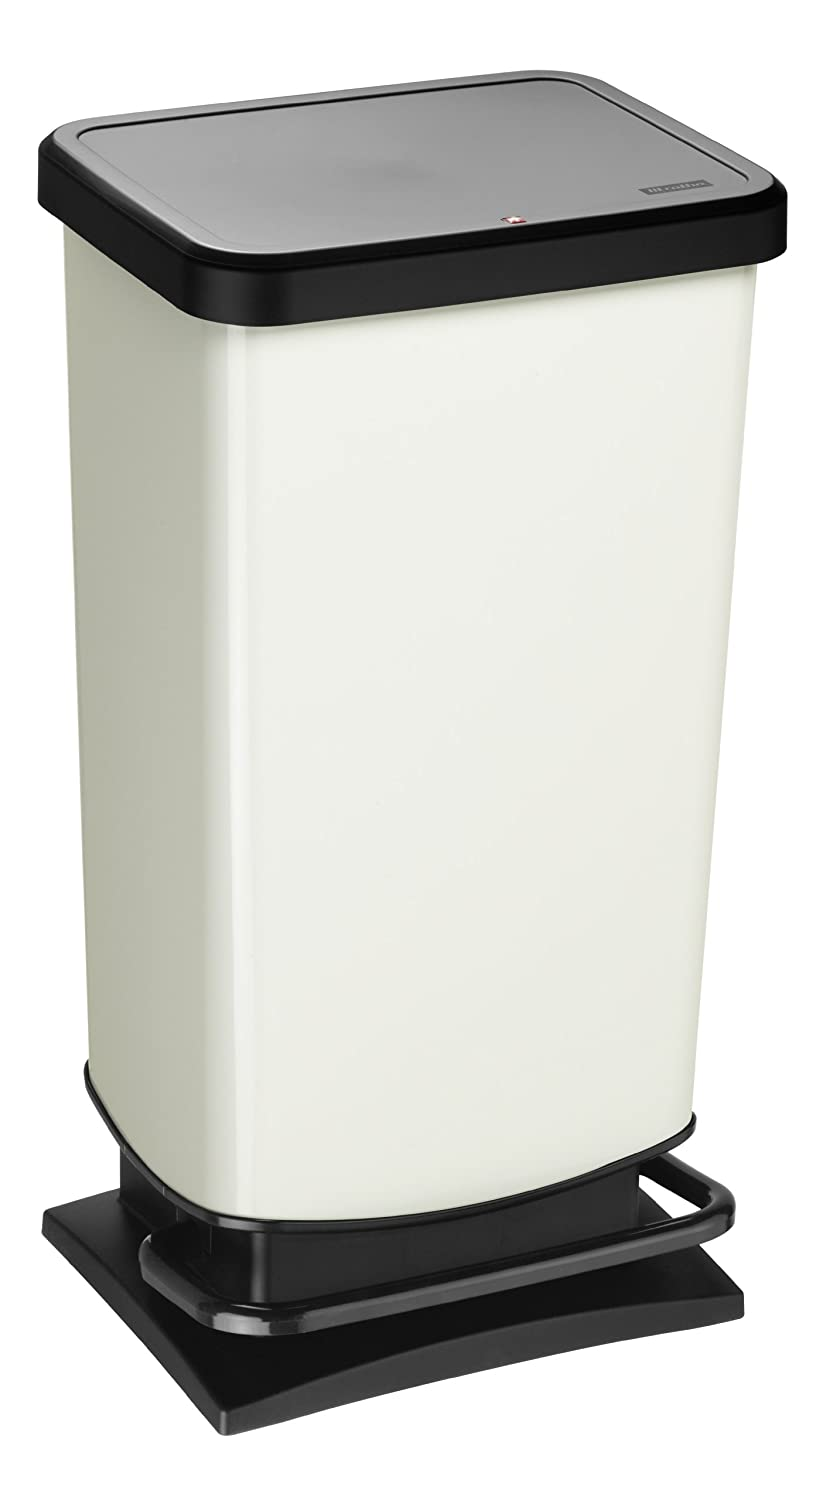 plastic green metallic 35.3 x 29.5 x 67.6 cm PP Aluminium 40 litres Rotho Paso waste bin 40l with odour-proof lid and pedal